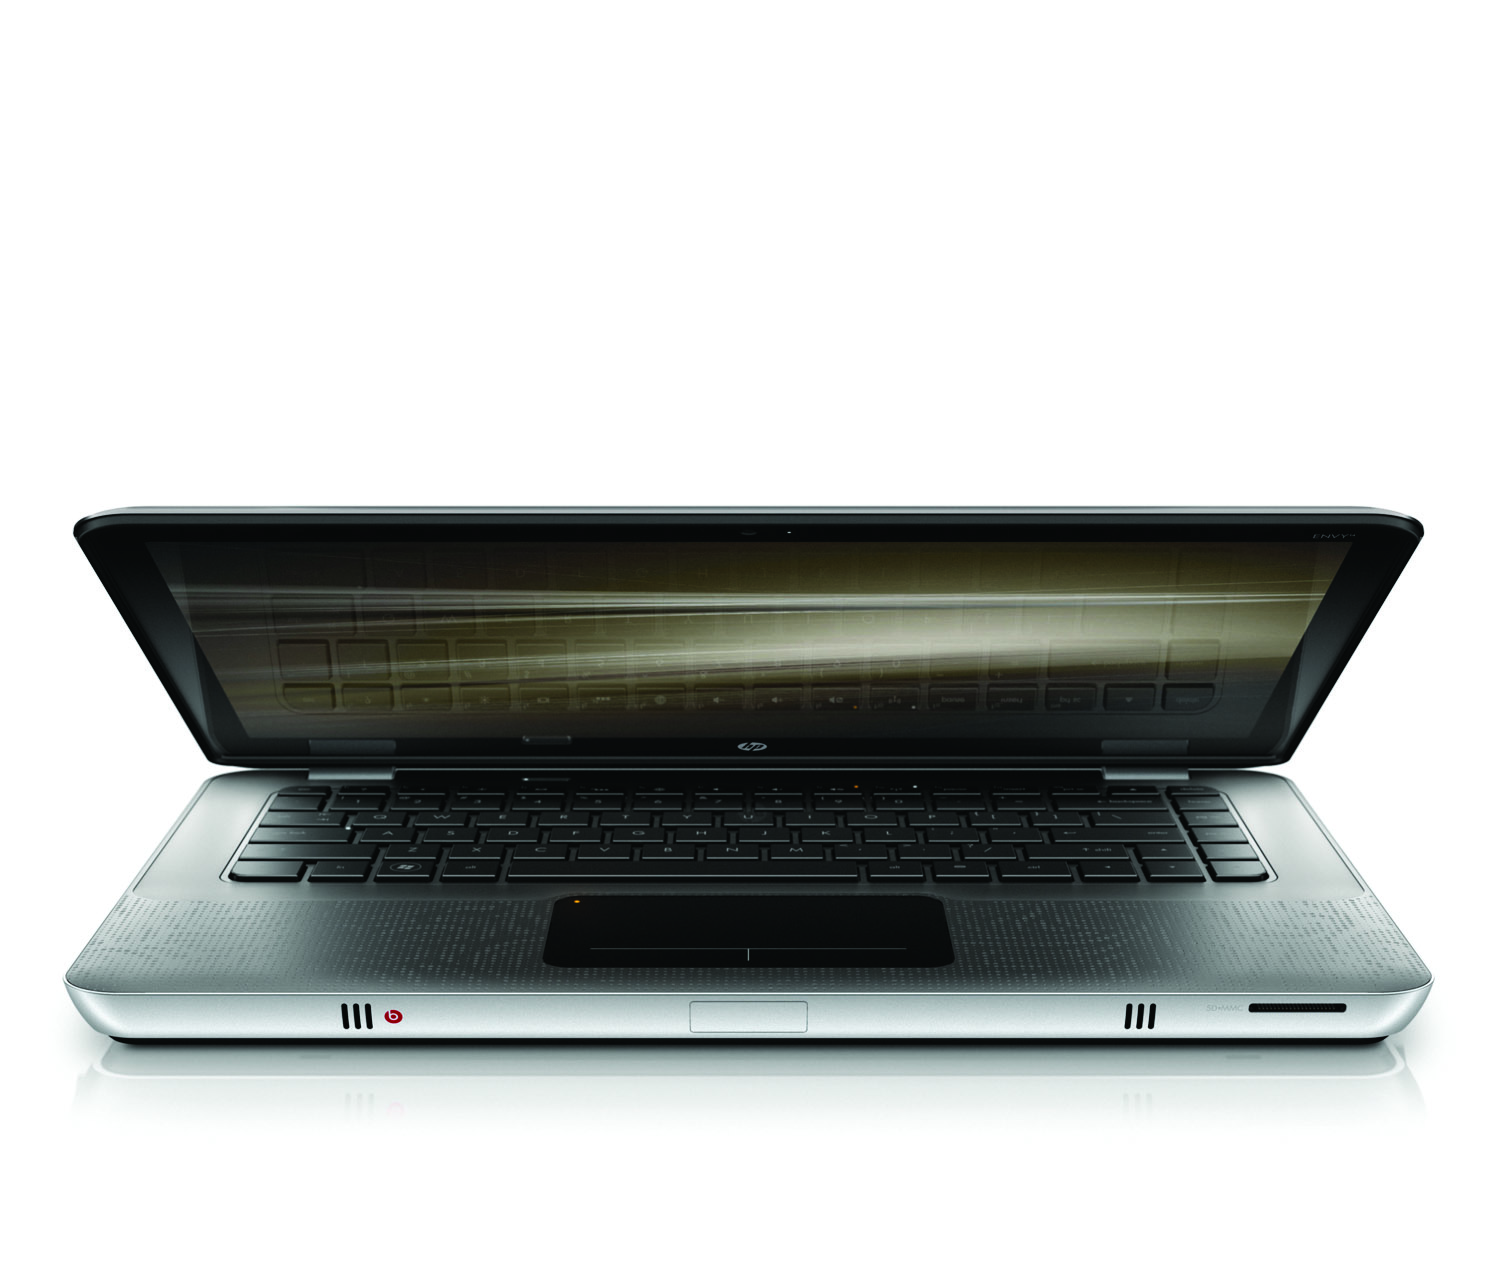 HP Envy 14, front slightly open on white